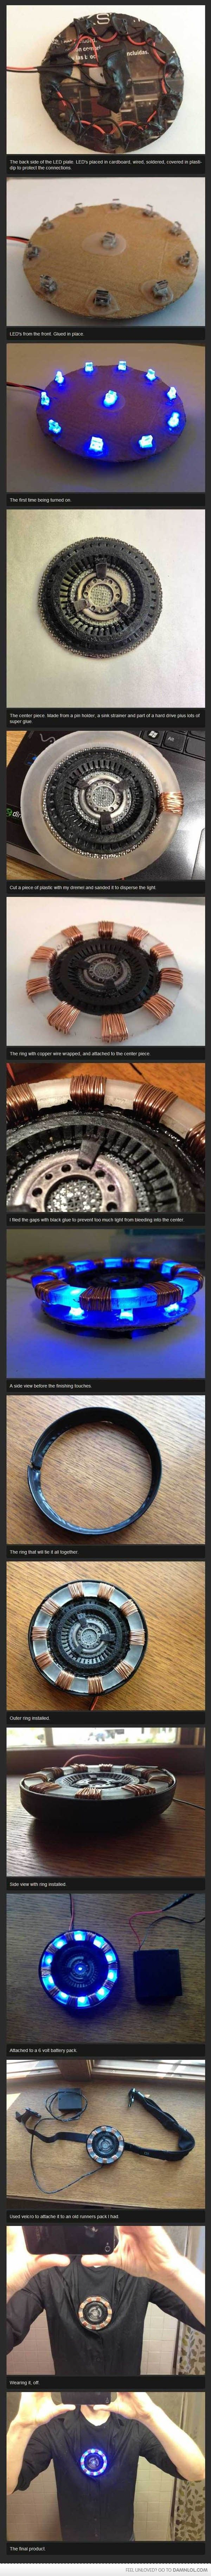 Tony Stark's miniaturized Arc Reactor. @Jamie Wise Wise D. I'm not sure if this is too much time on your hands or an over abundance of awesome.